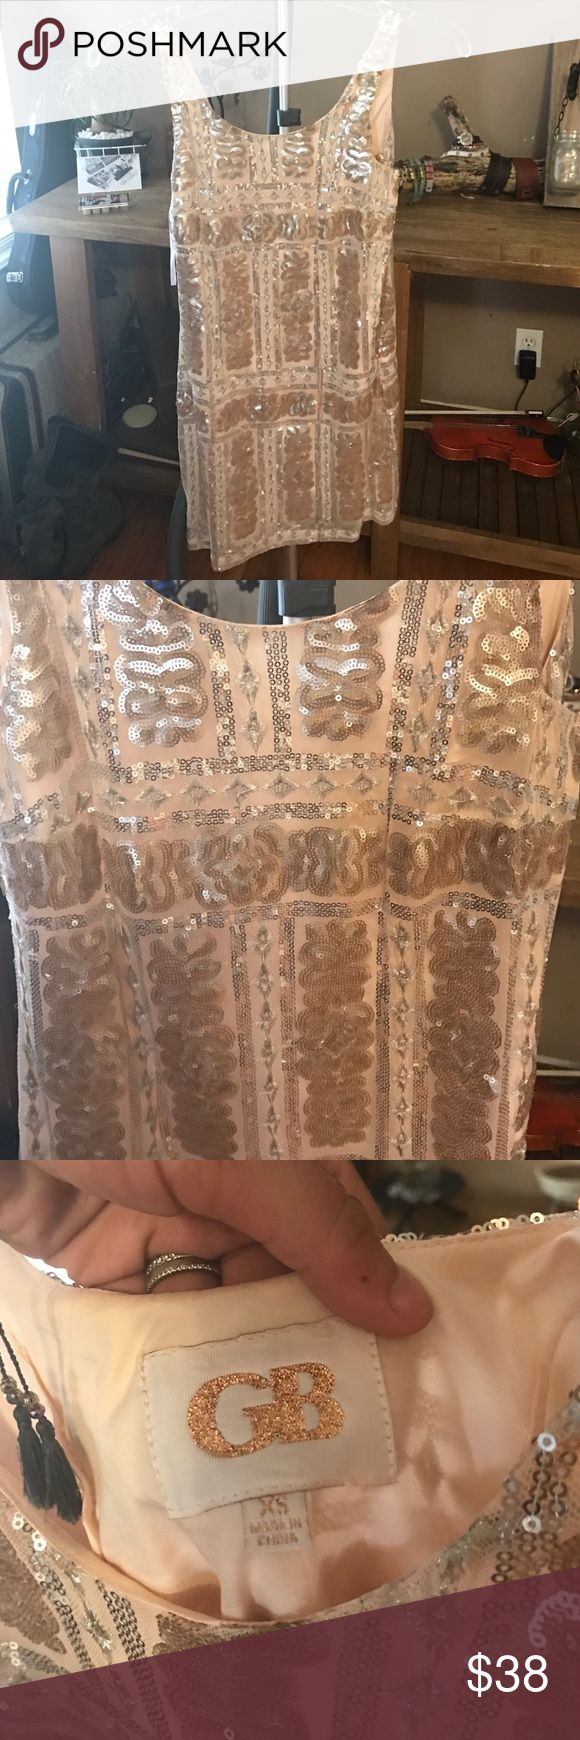 Xs 0 Gianni Bini sequin cocktail party dress See pics , lined mid dress , no issues almost new . worn for 2 hours at my XMAS party Gianni Bini Dresses Mini